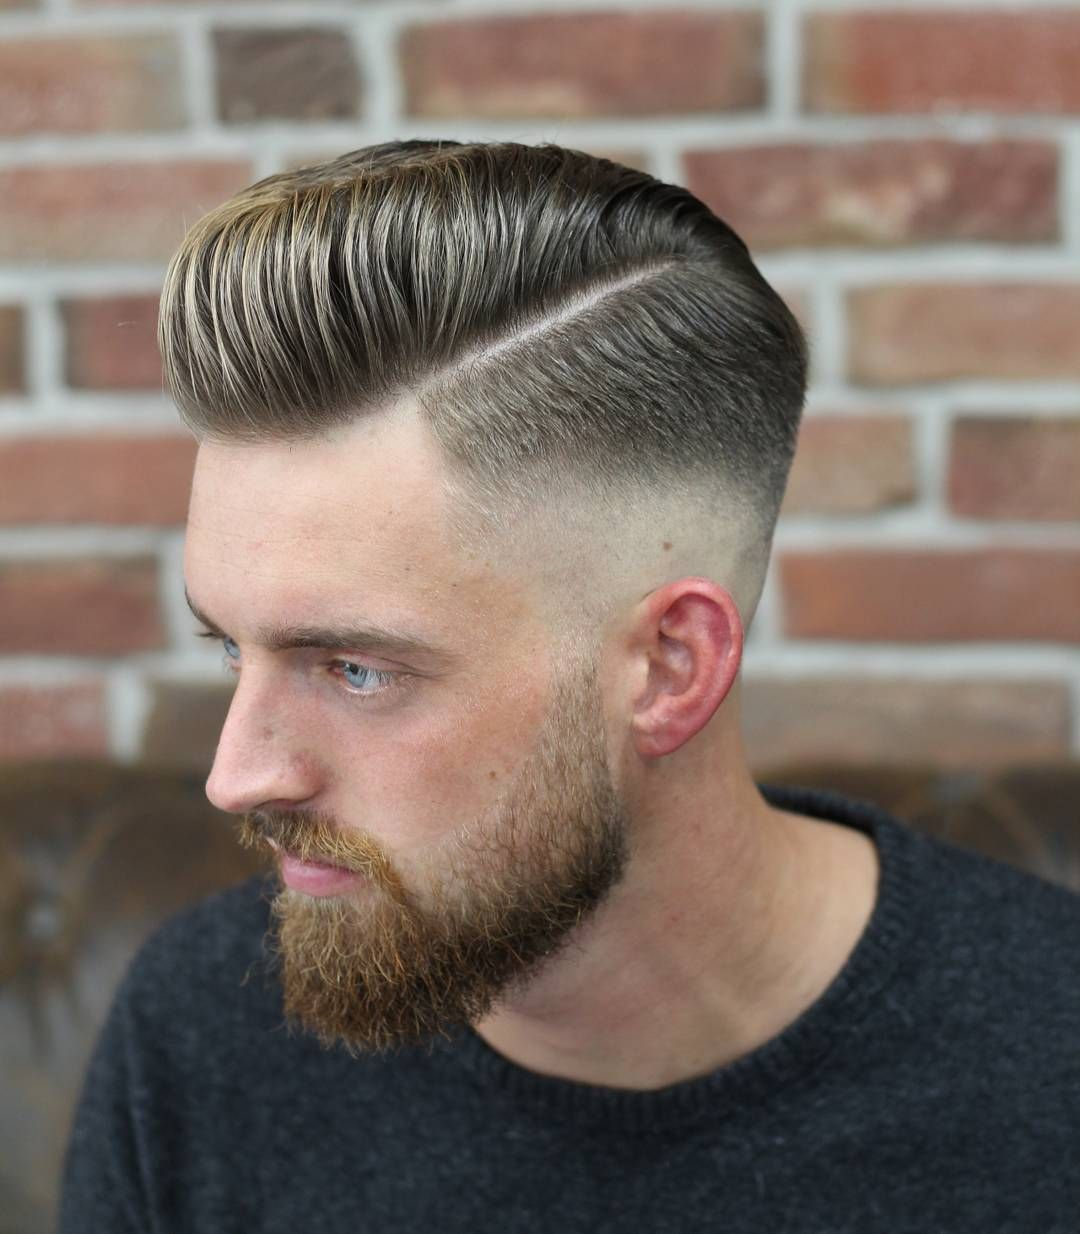 27 Cool Hairstyles For Men | Do It | Pinterest | Barber shop ...